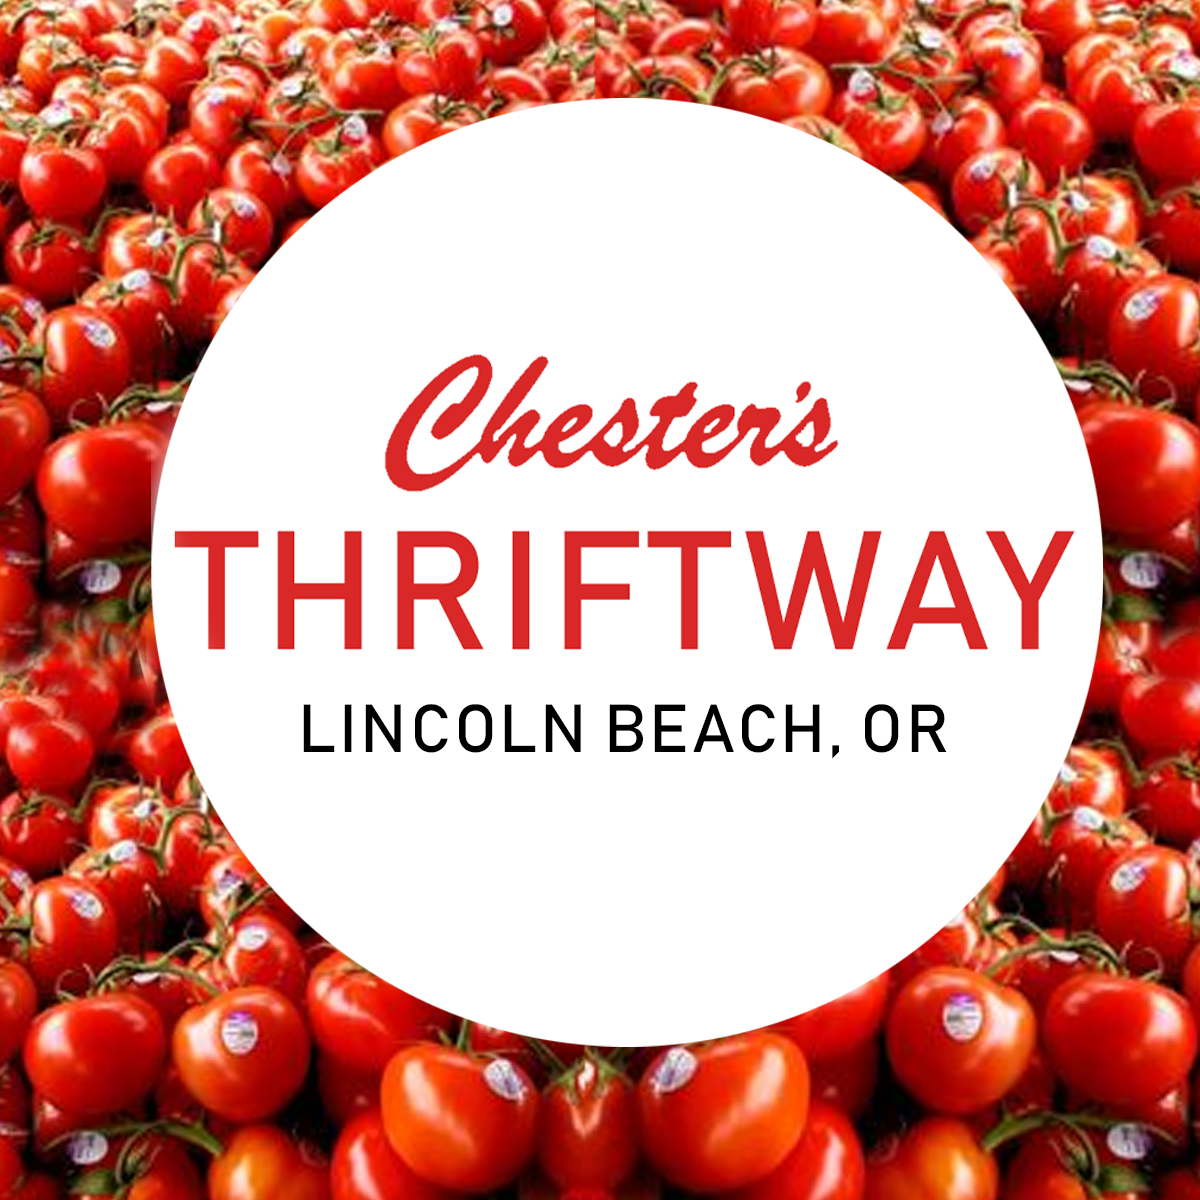 Chester's Thriftway - Chester's Thriftway can be found throughout Oregon and provide fresh local produce and groceries.